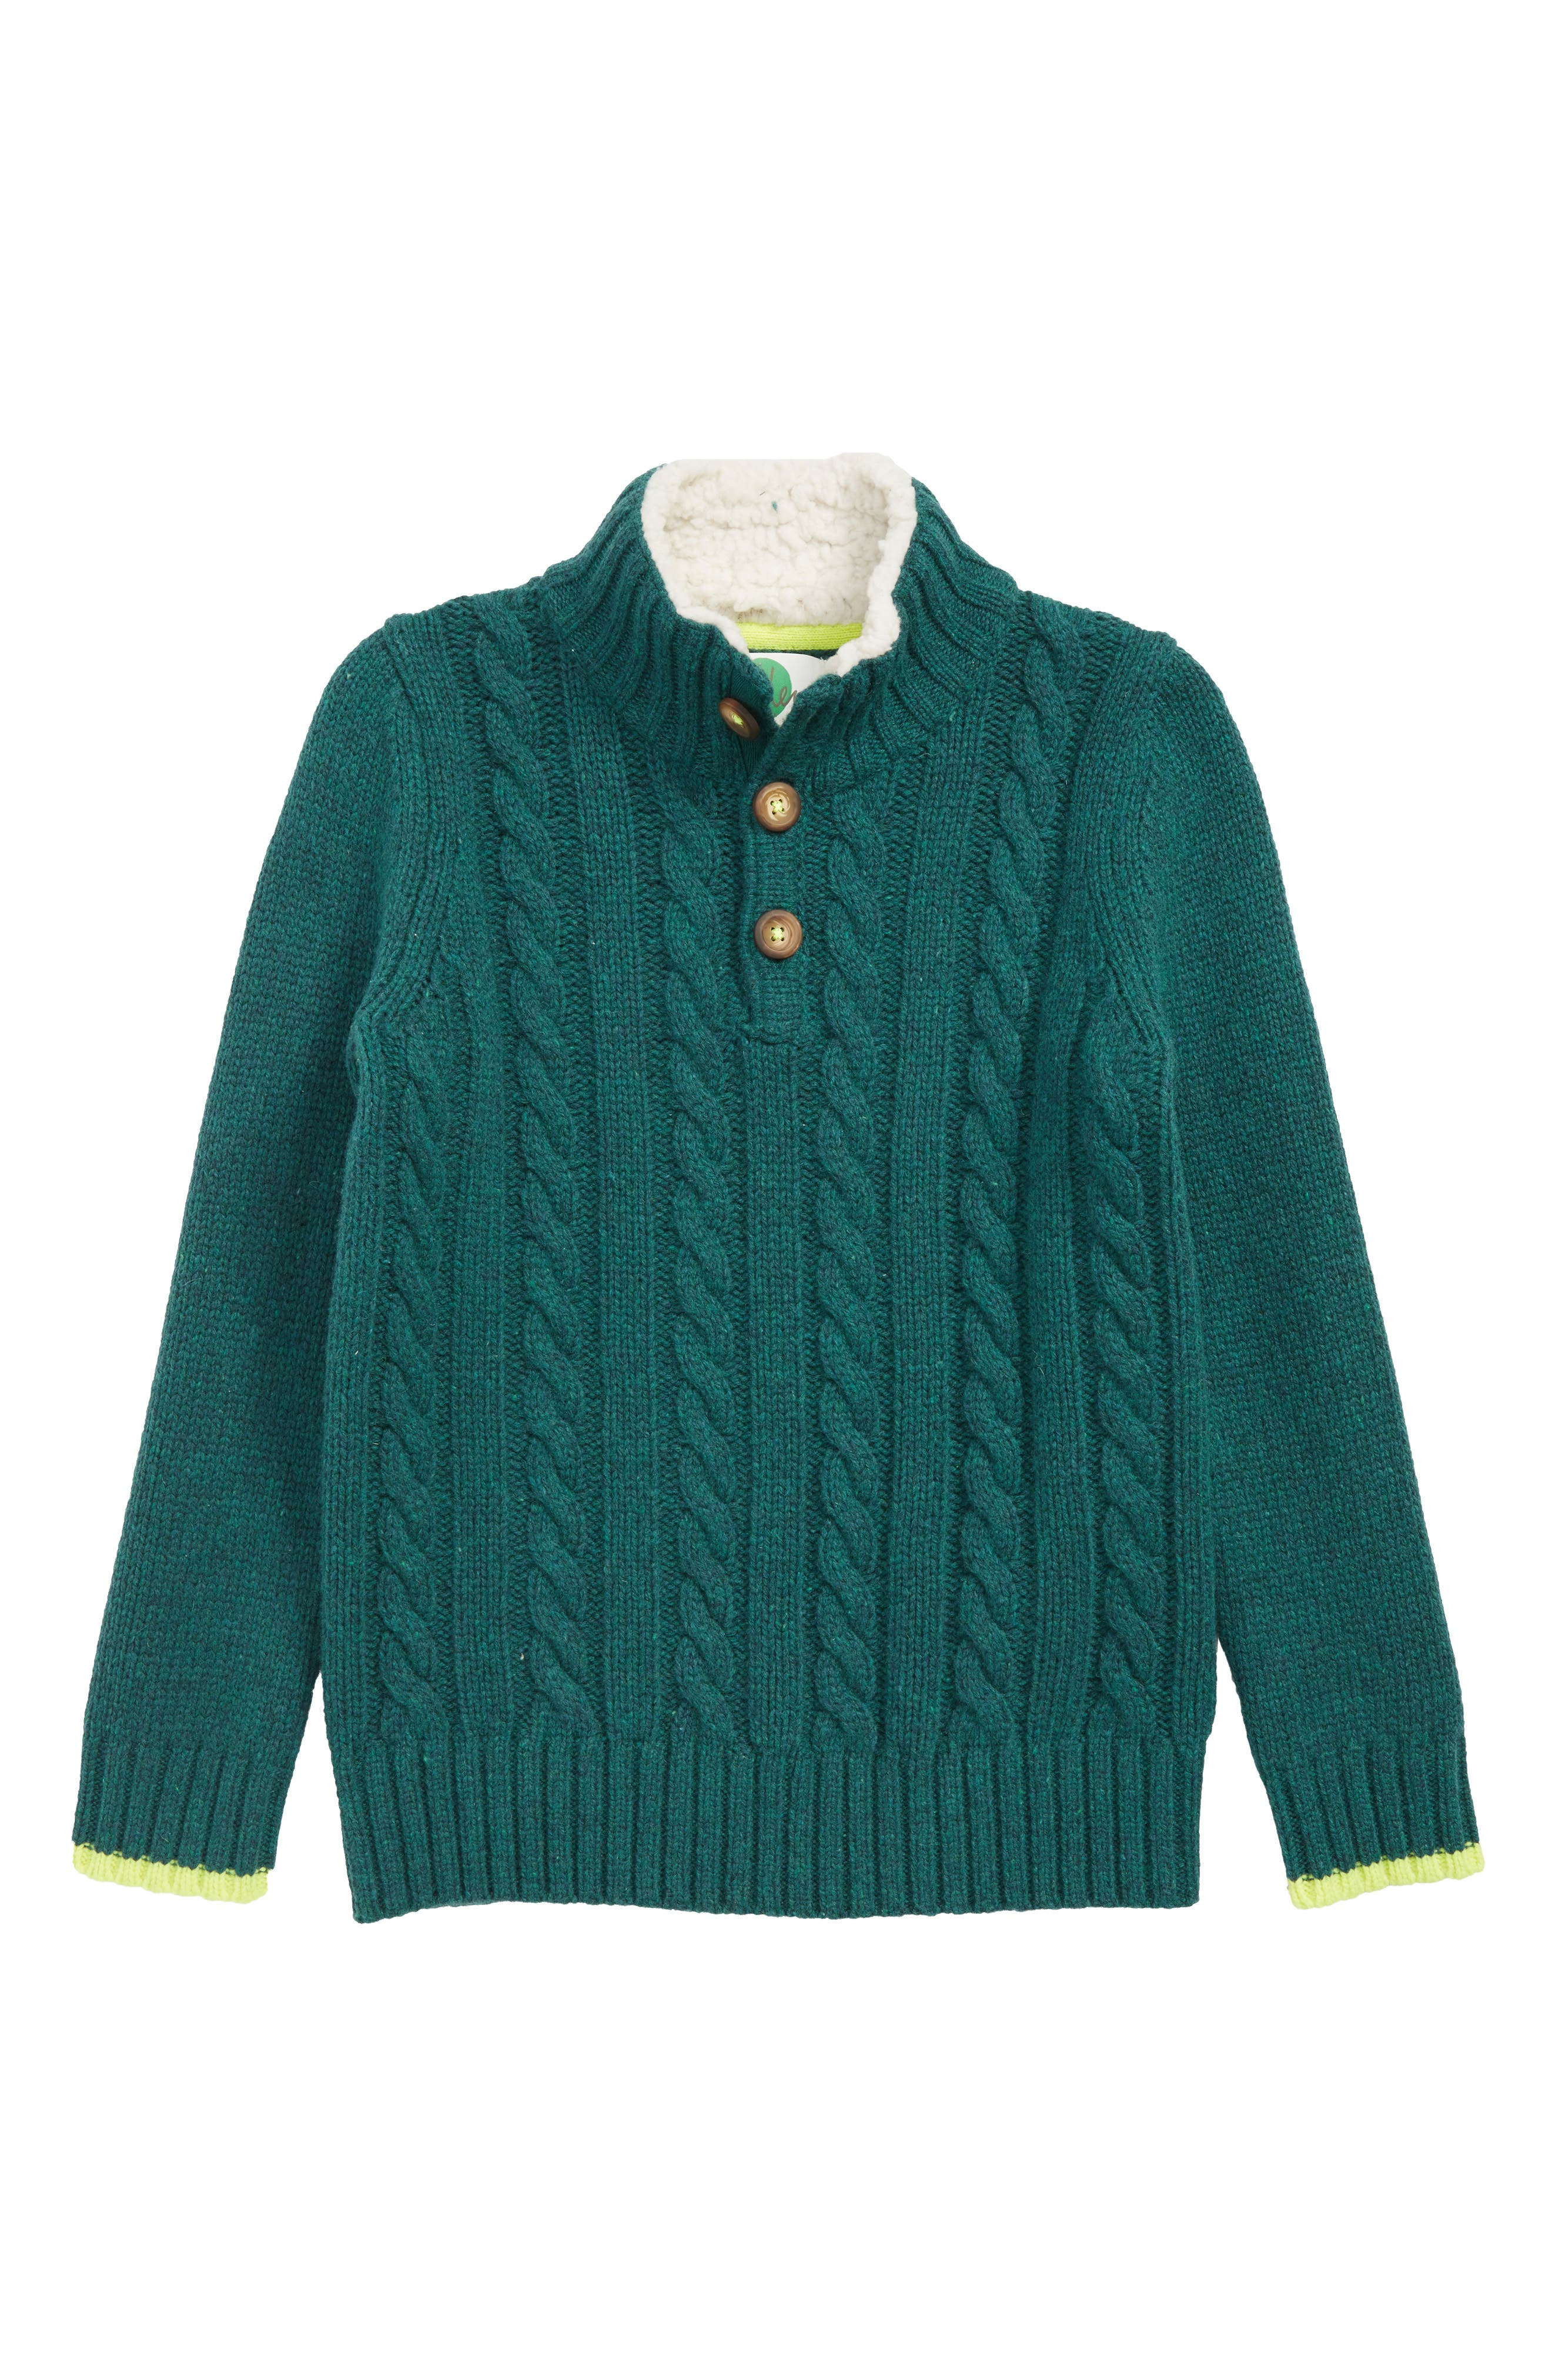 MINI BODEN Chunky Knit Sweater, Main, color, STORM GREEN